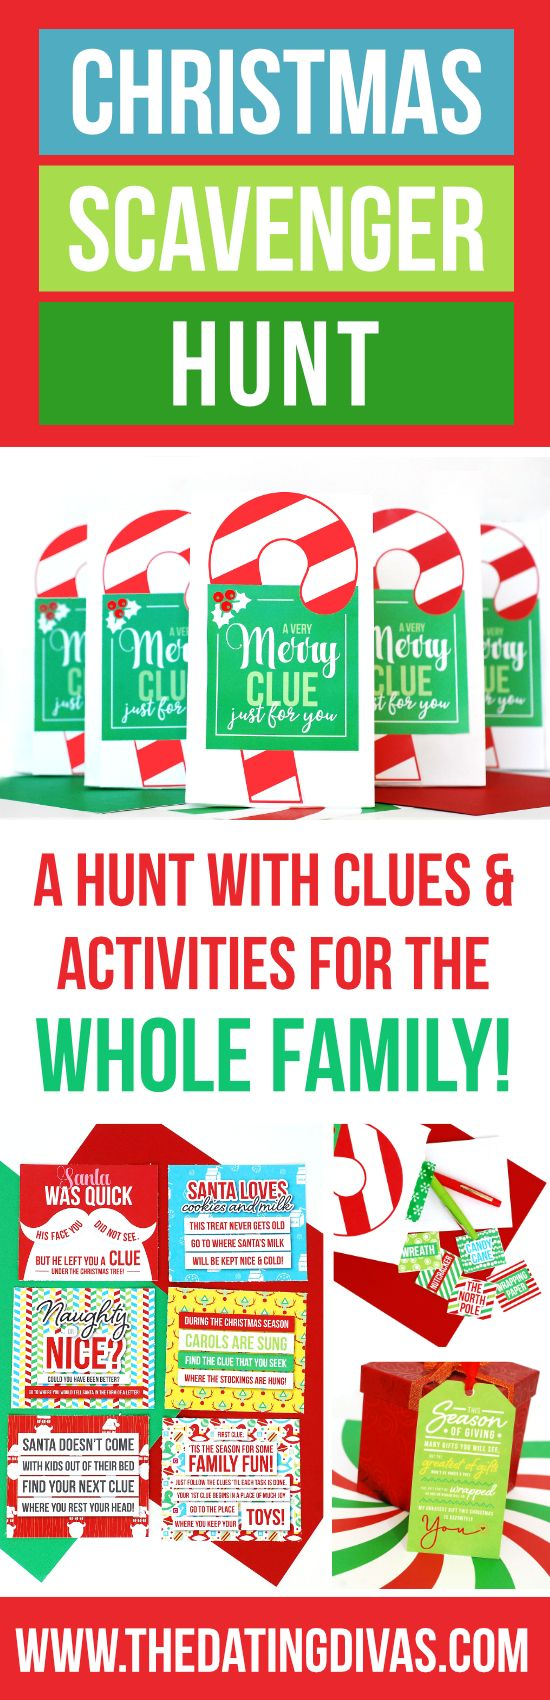 Clues and activities for a Christmas Scavenger Hunt the whole family can enjoy! Each stop on the scavenger hunt includes a Christmas-themed task or game! This would be so fun to do Christmas morning and the last stop be all the presents from Santa!